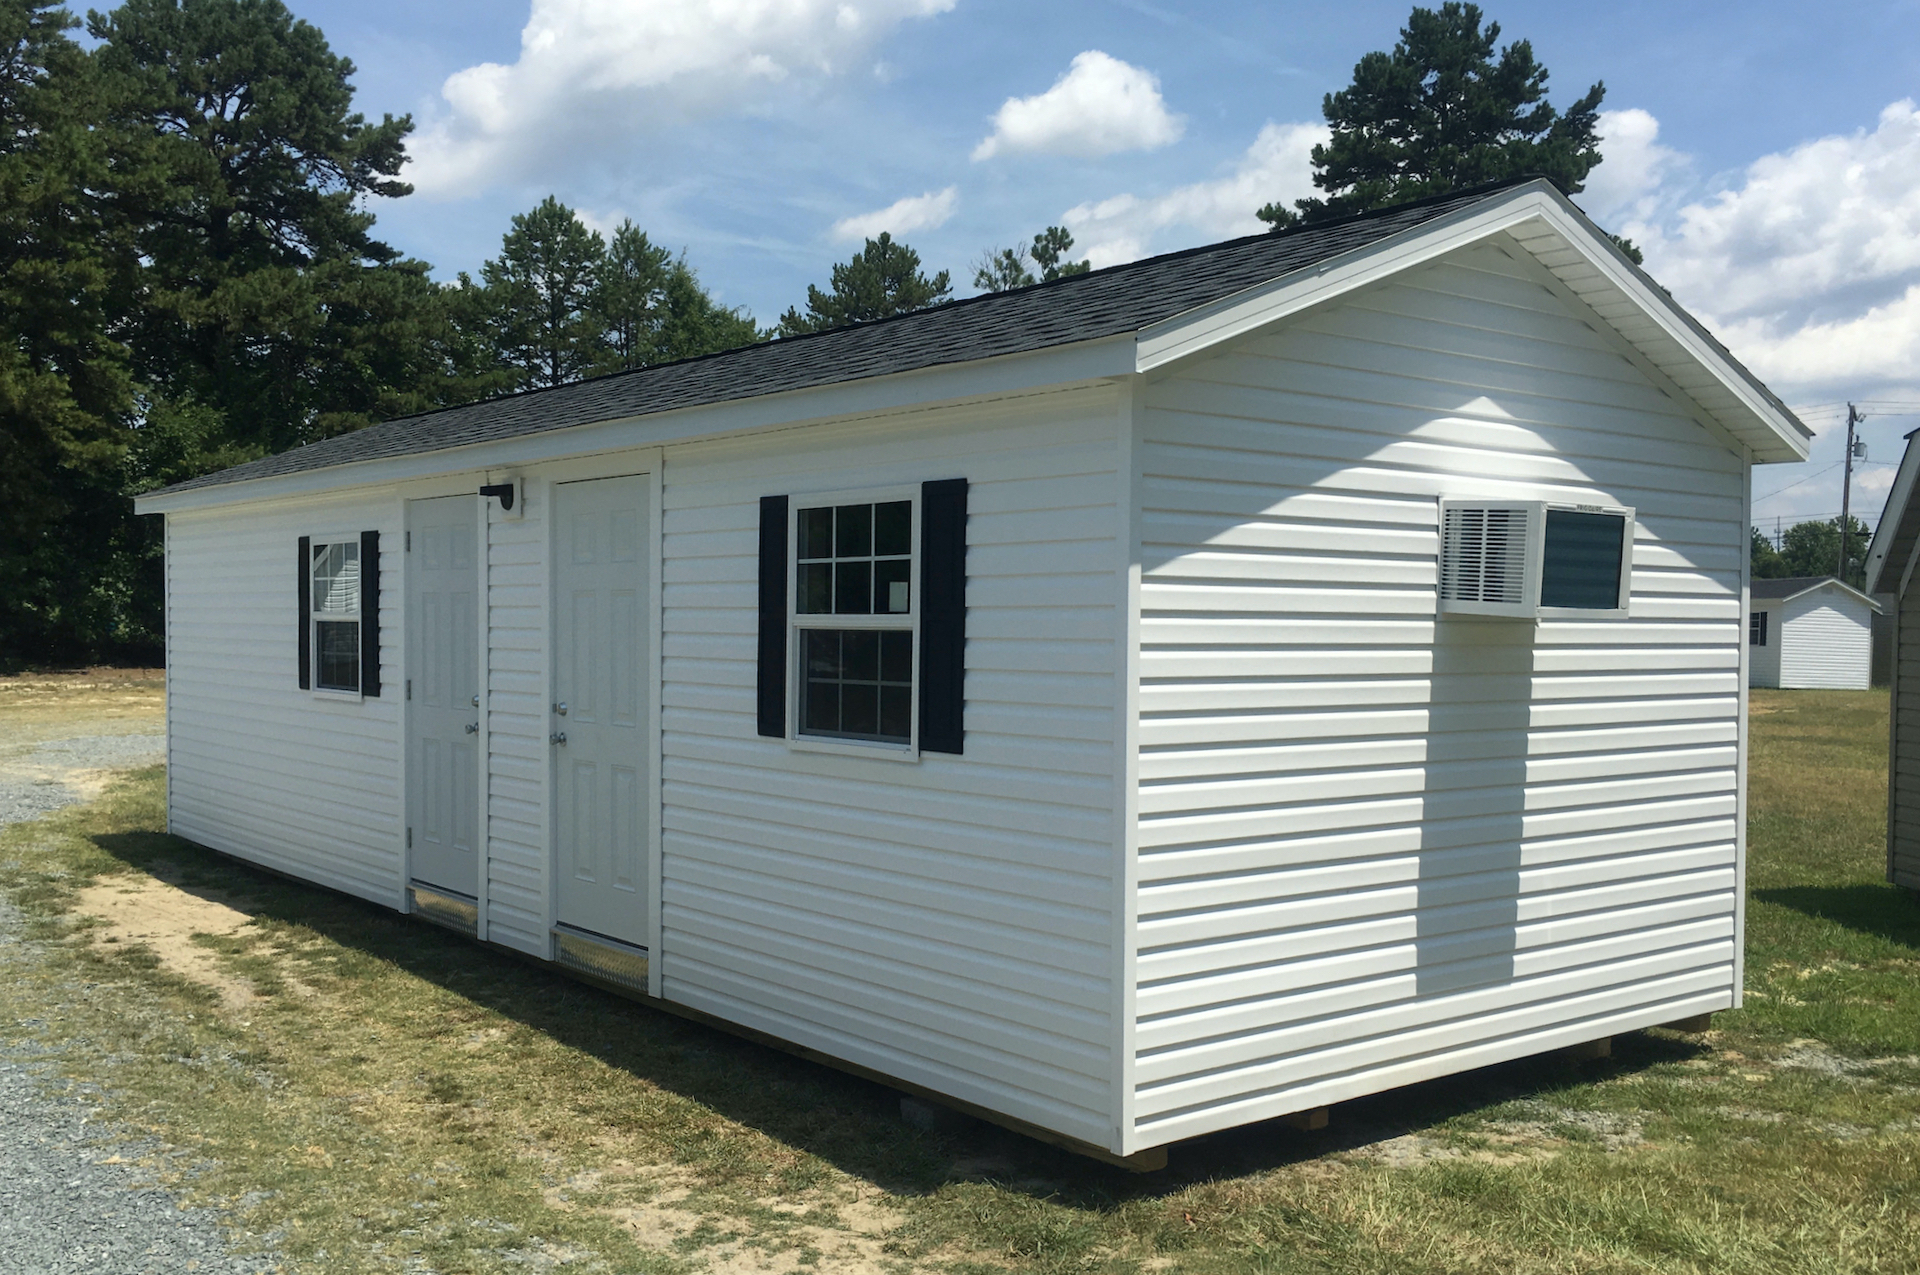 Cooled Storage Shed Near Me